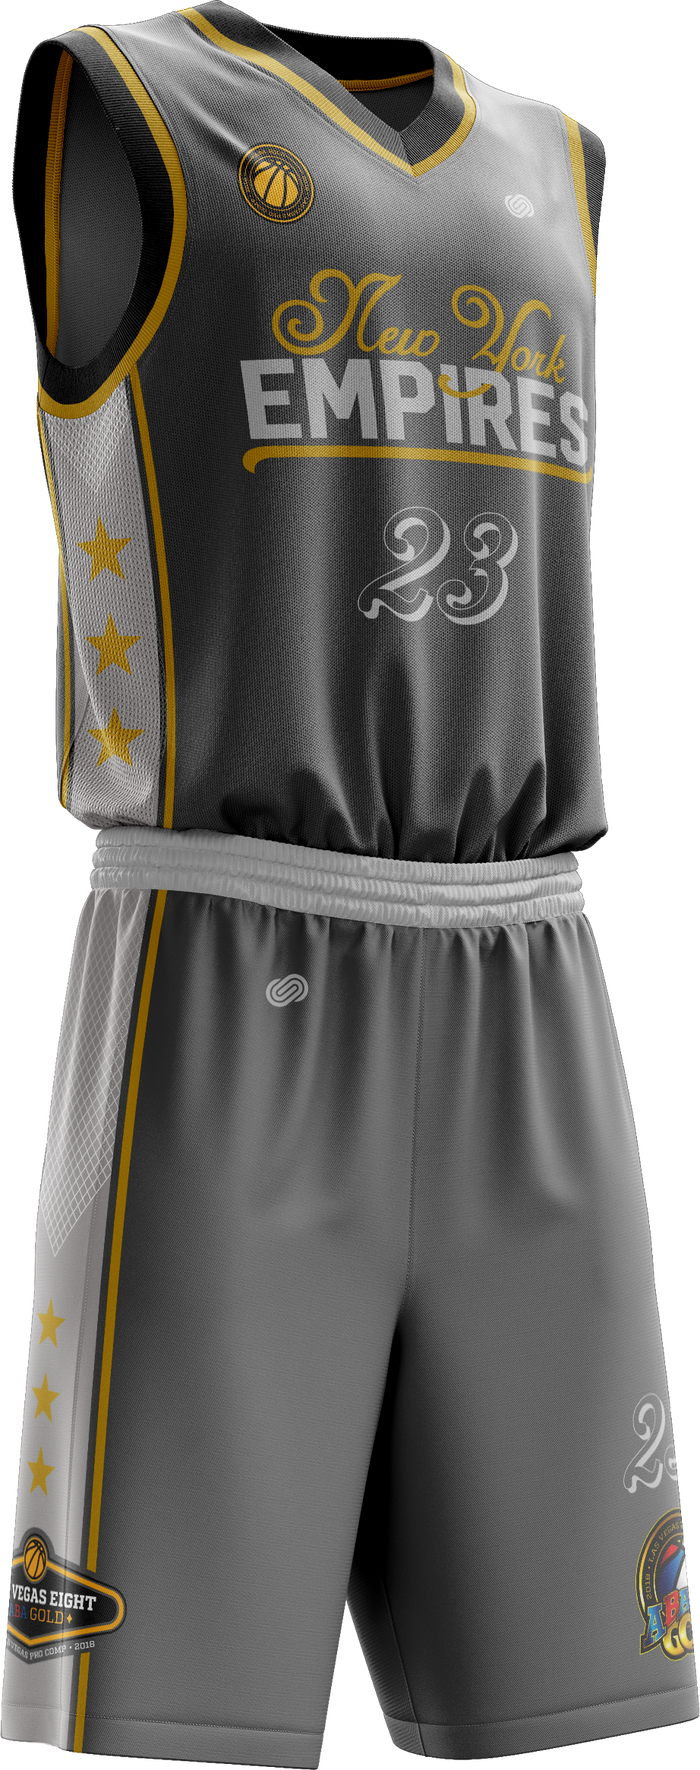 NY Empires Home Uniform